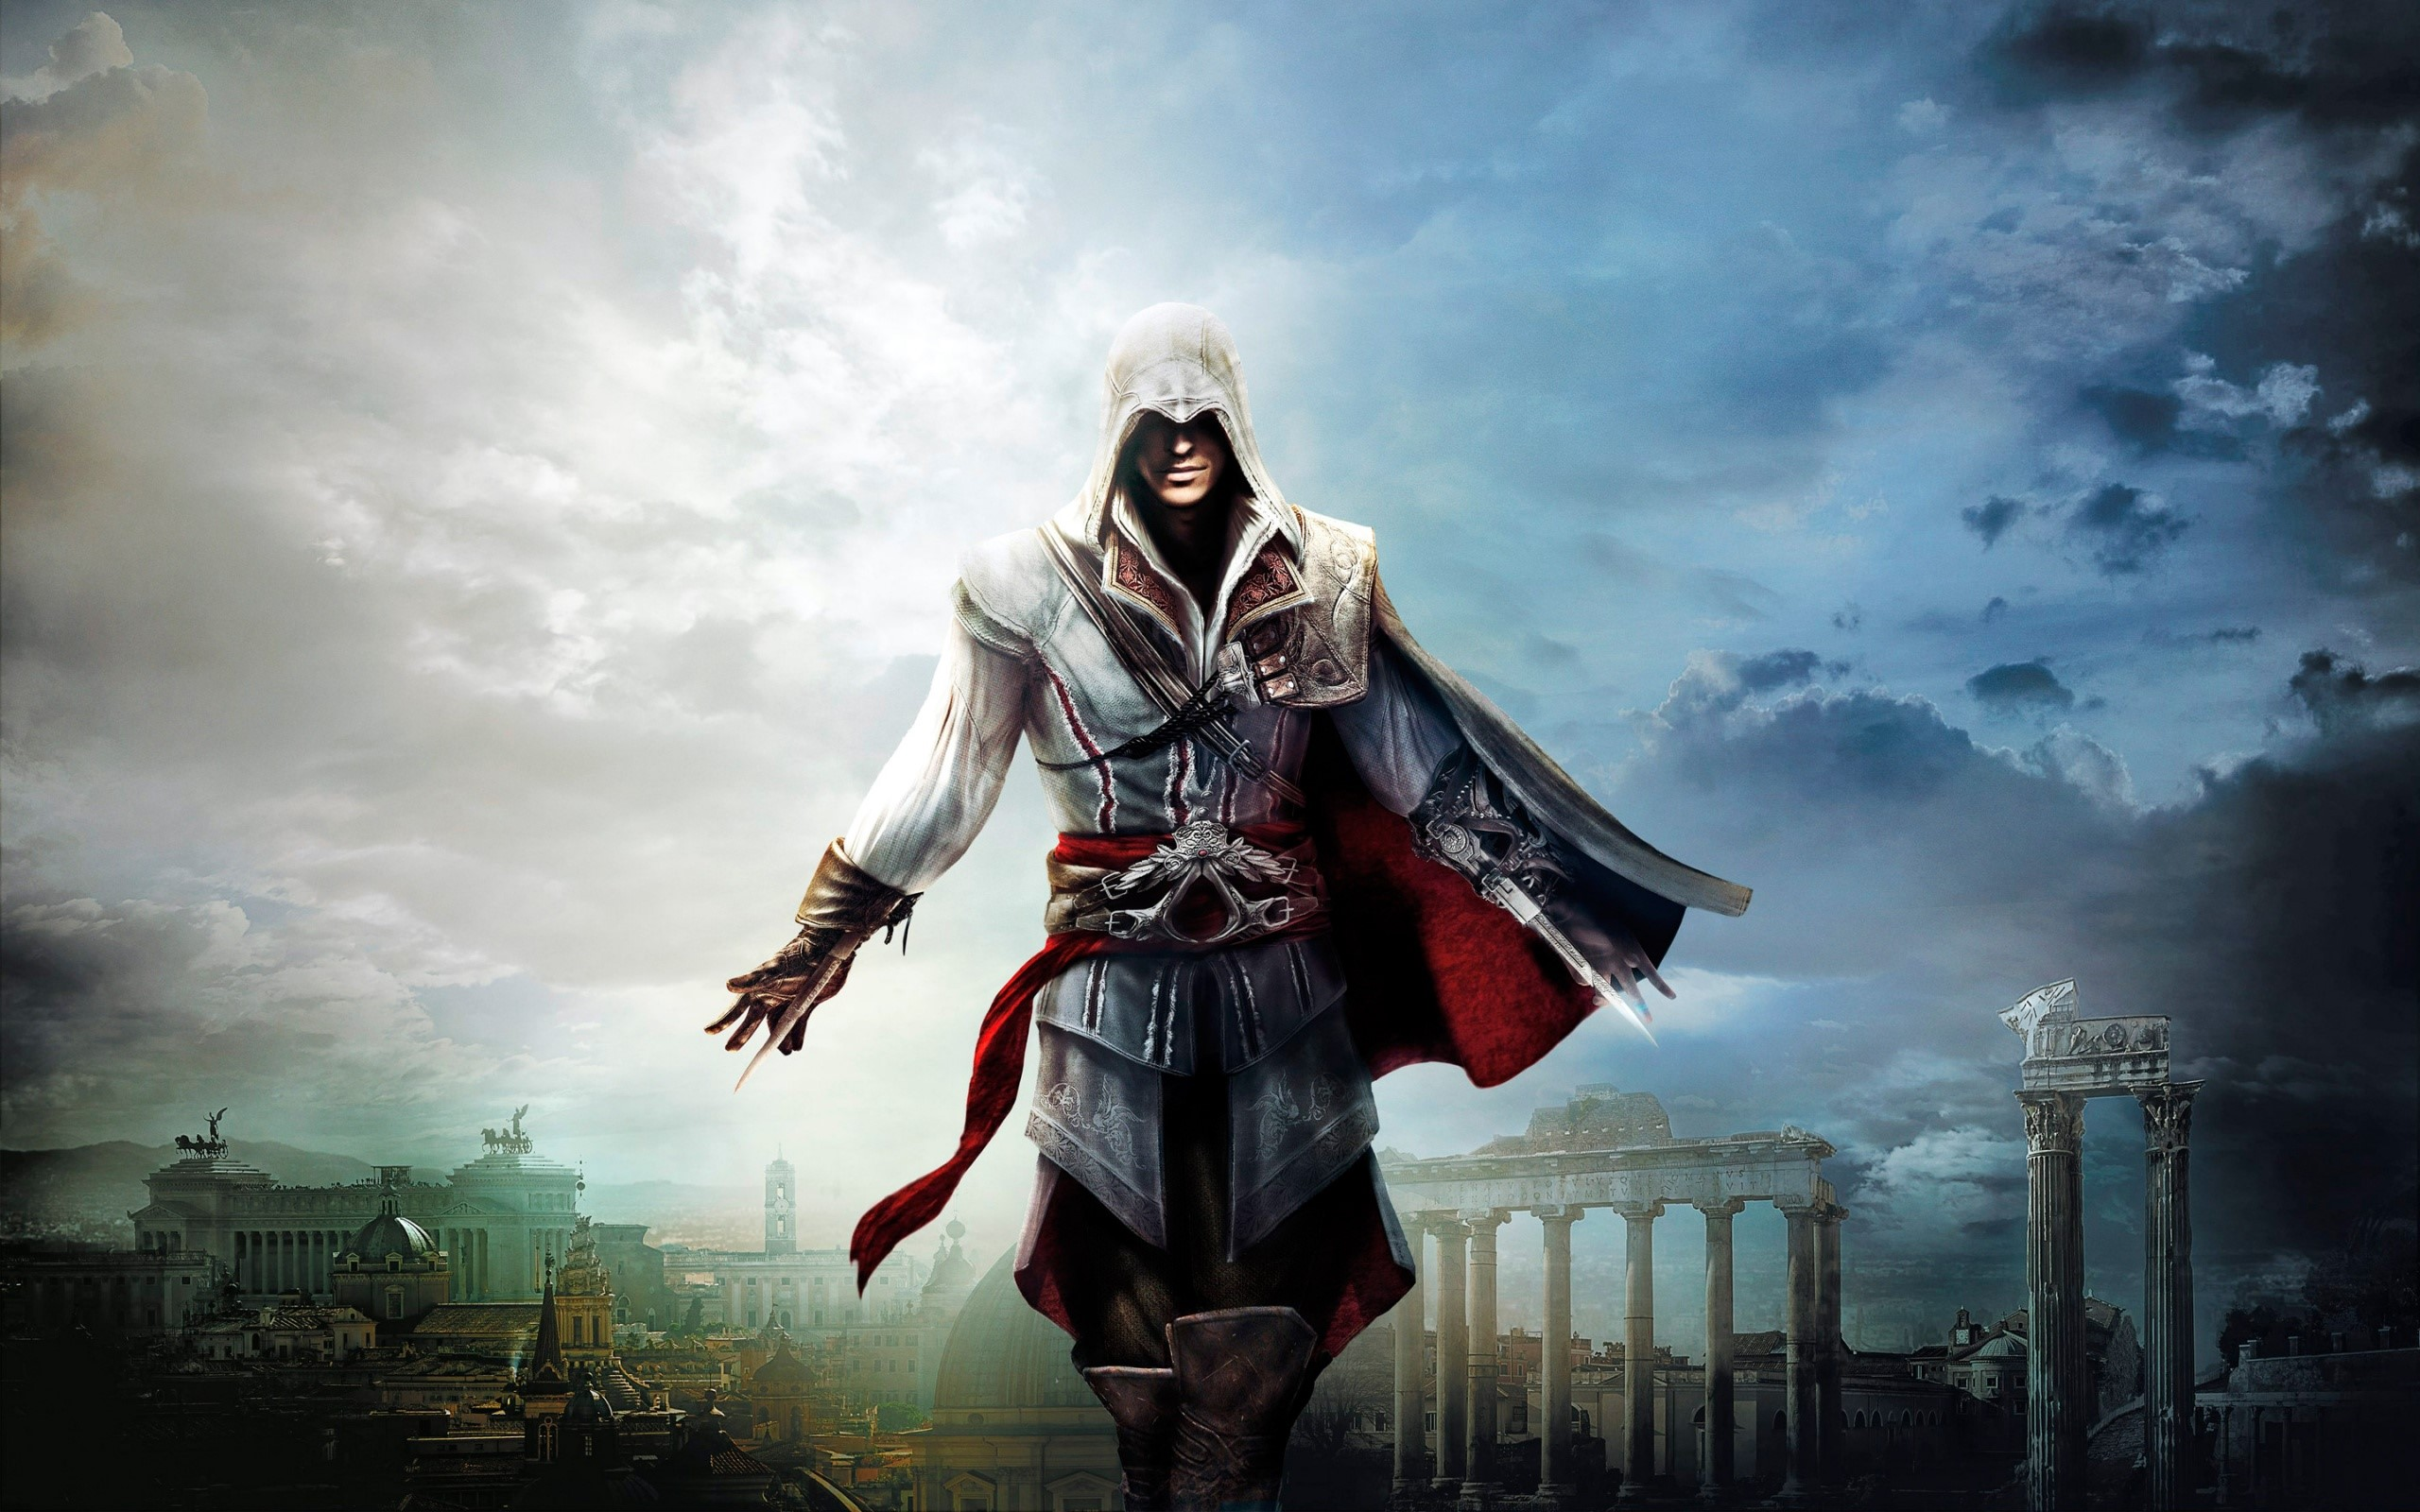 Wallpaper Ezio de Assassins Creed Images